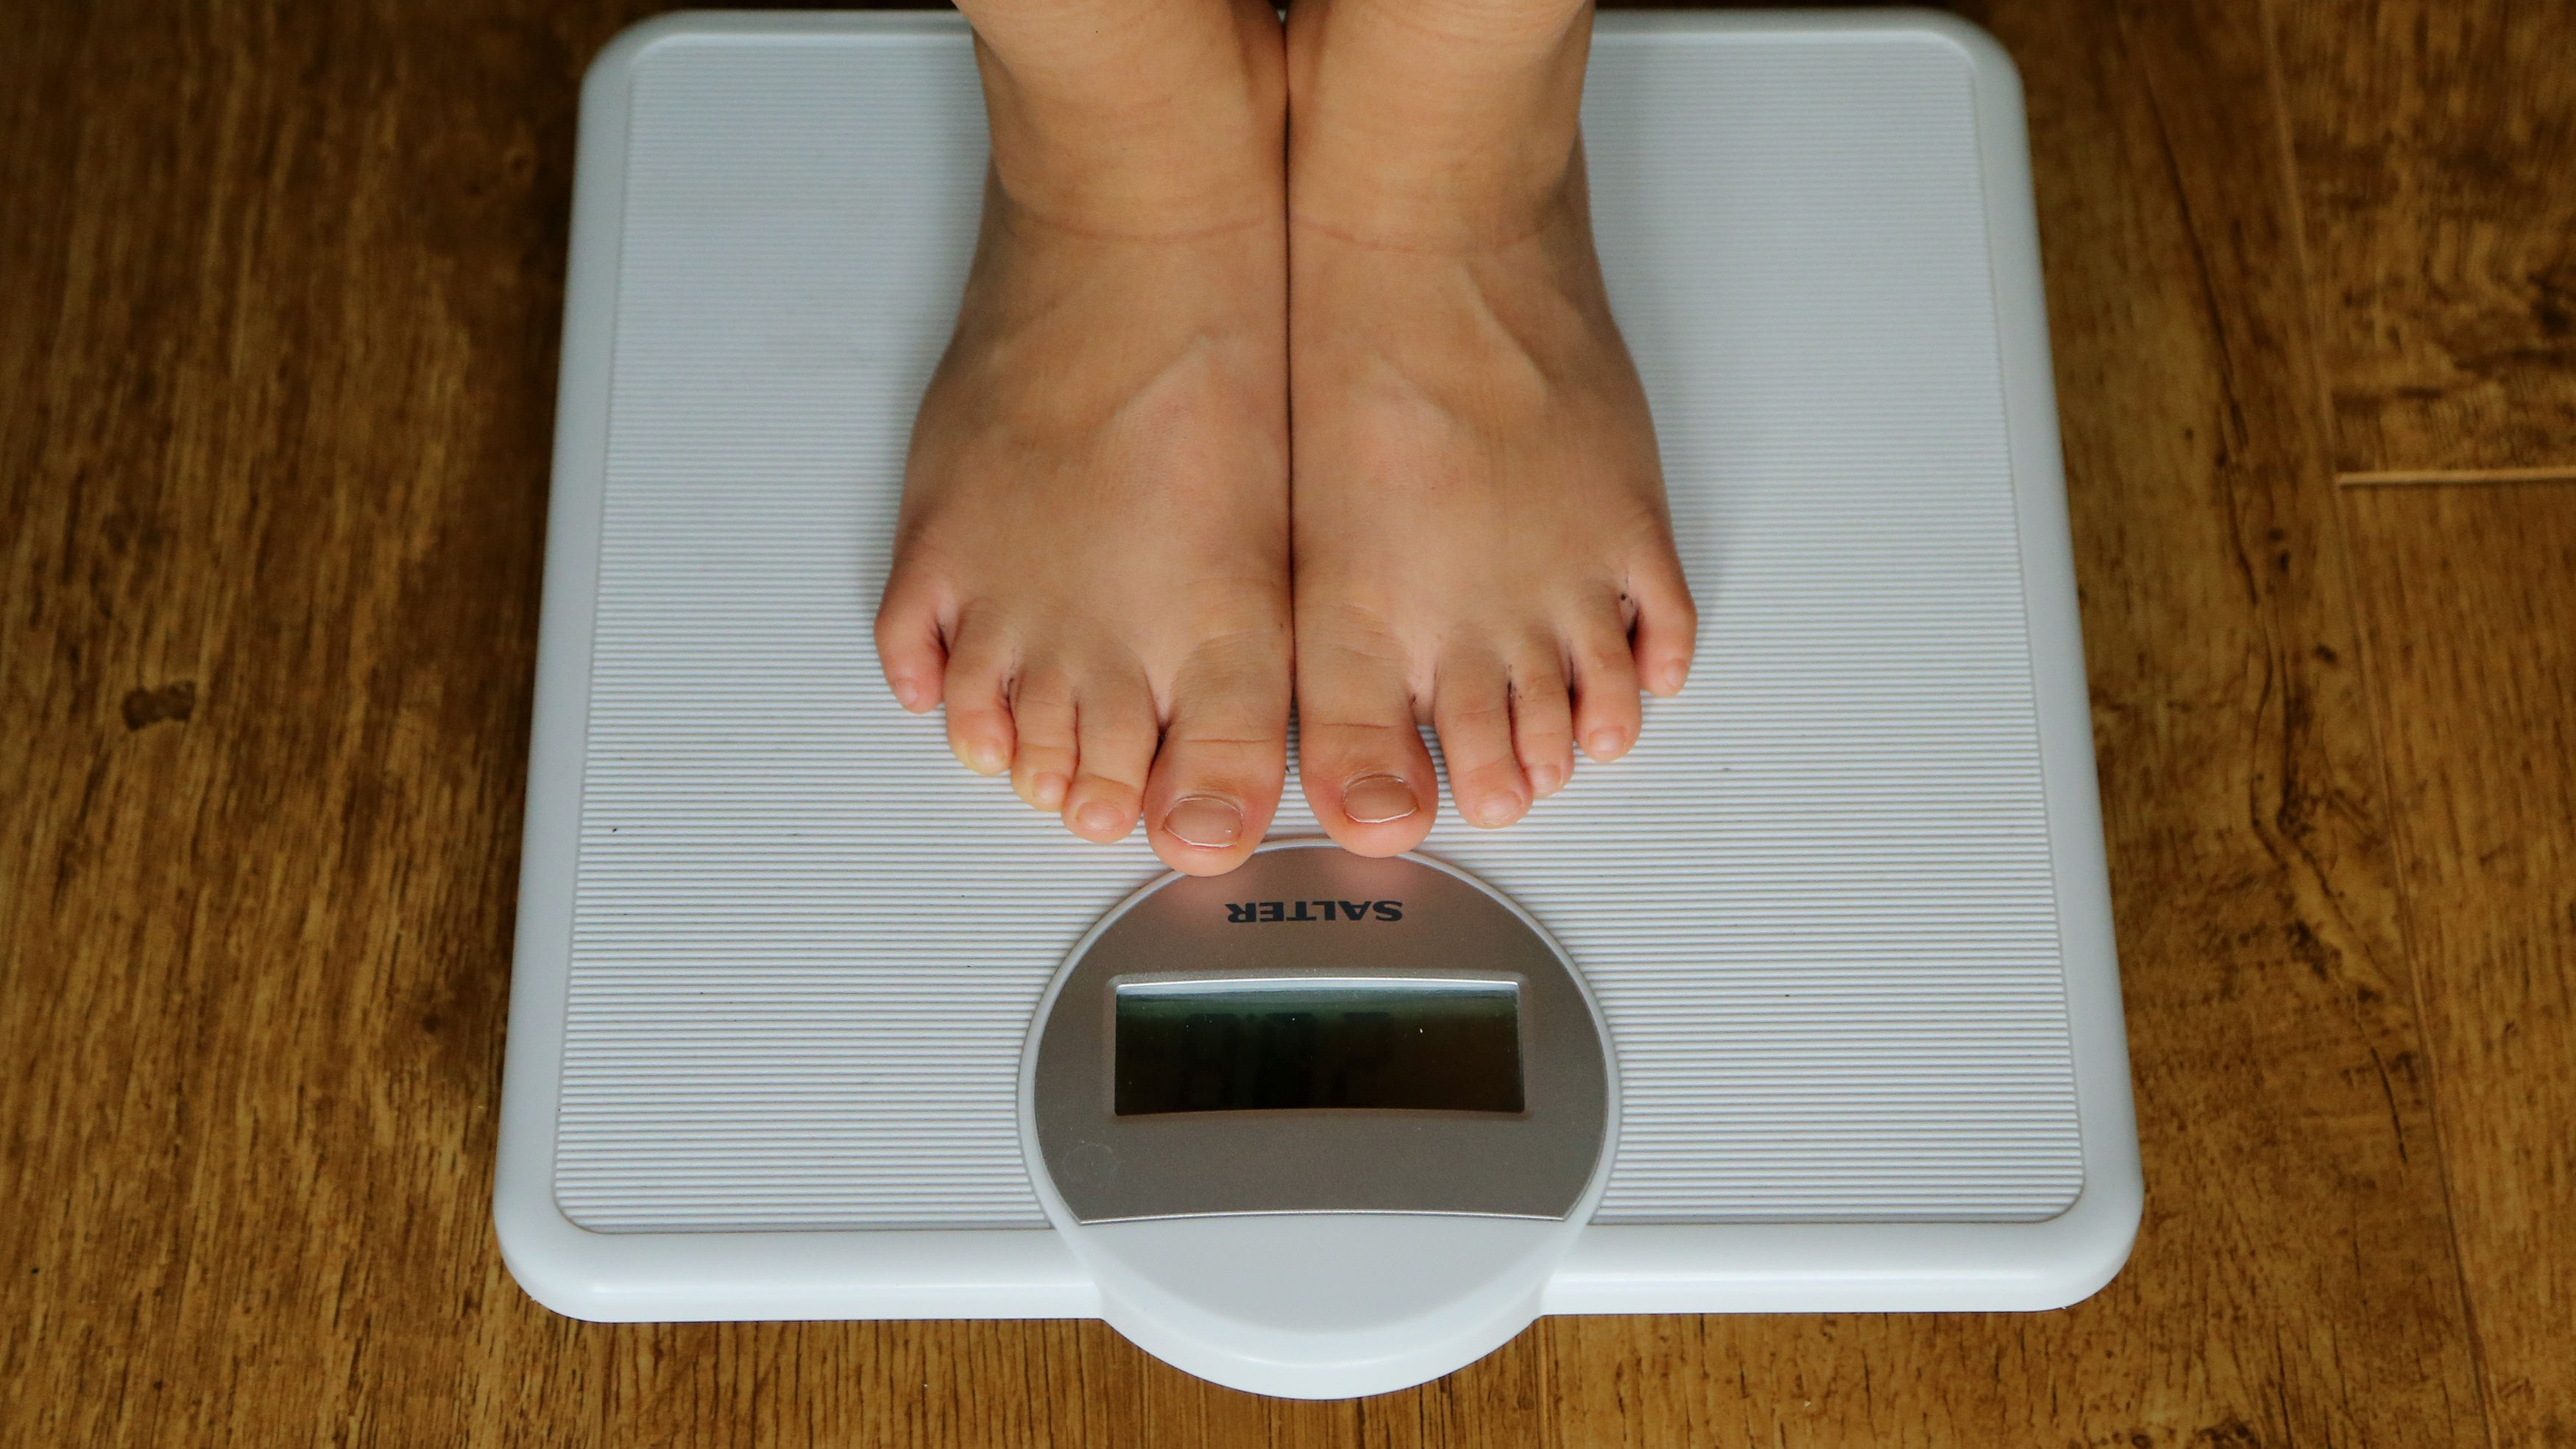 Obese Children Face Increased Cancer Risk If Weight Gain Continues Experts Warn Bt